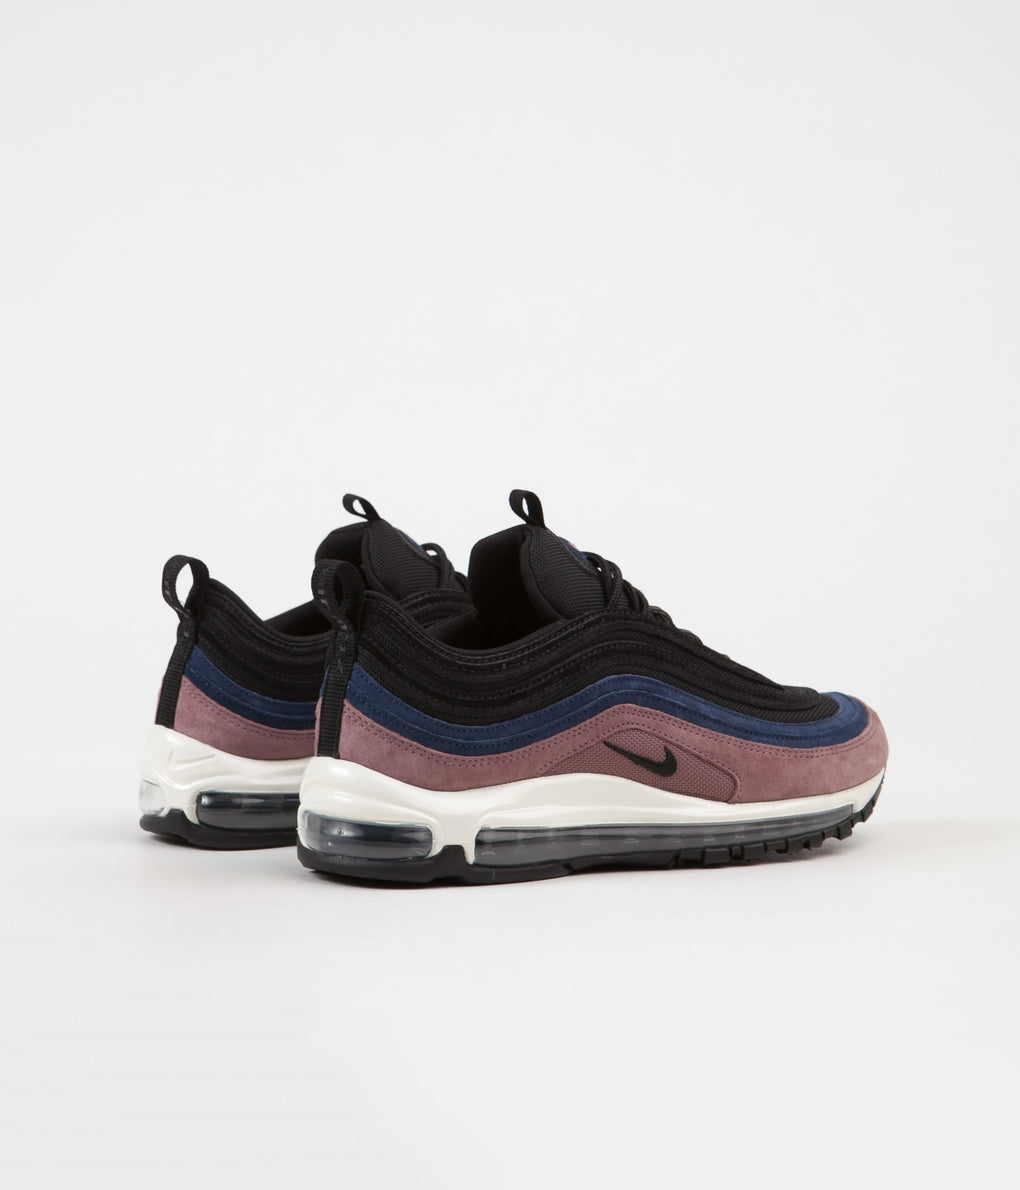 Nike Air Max 97 Premium Shoes - Smokey Mauve / Black - Midnight Navy - Sail